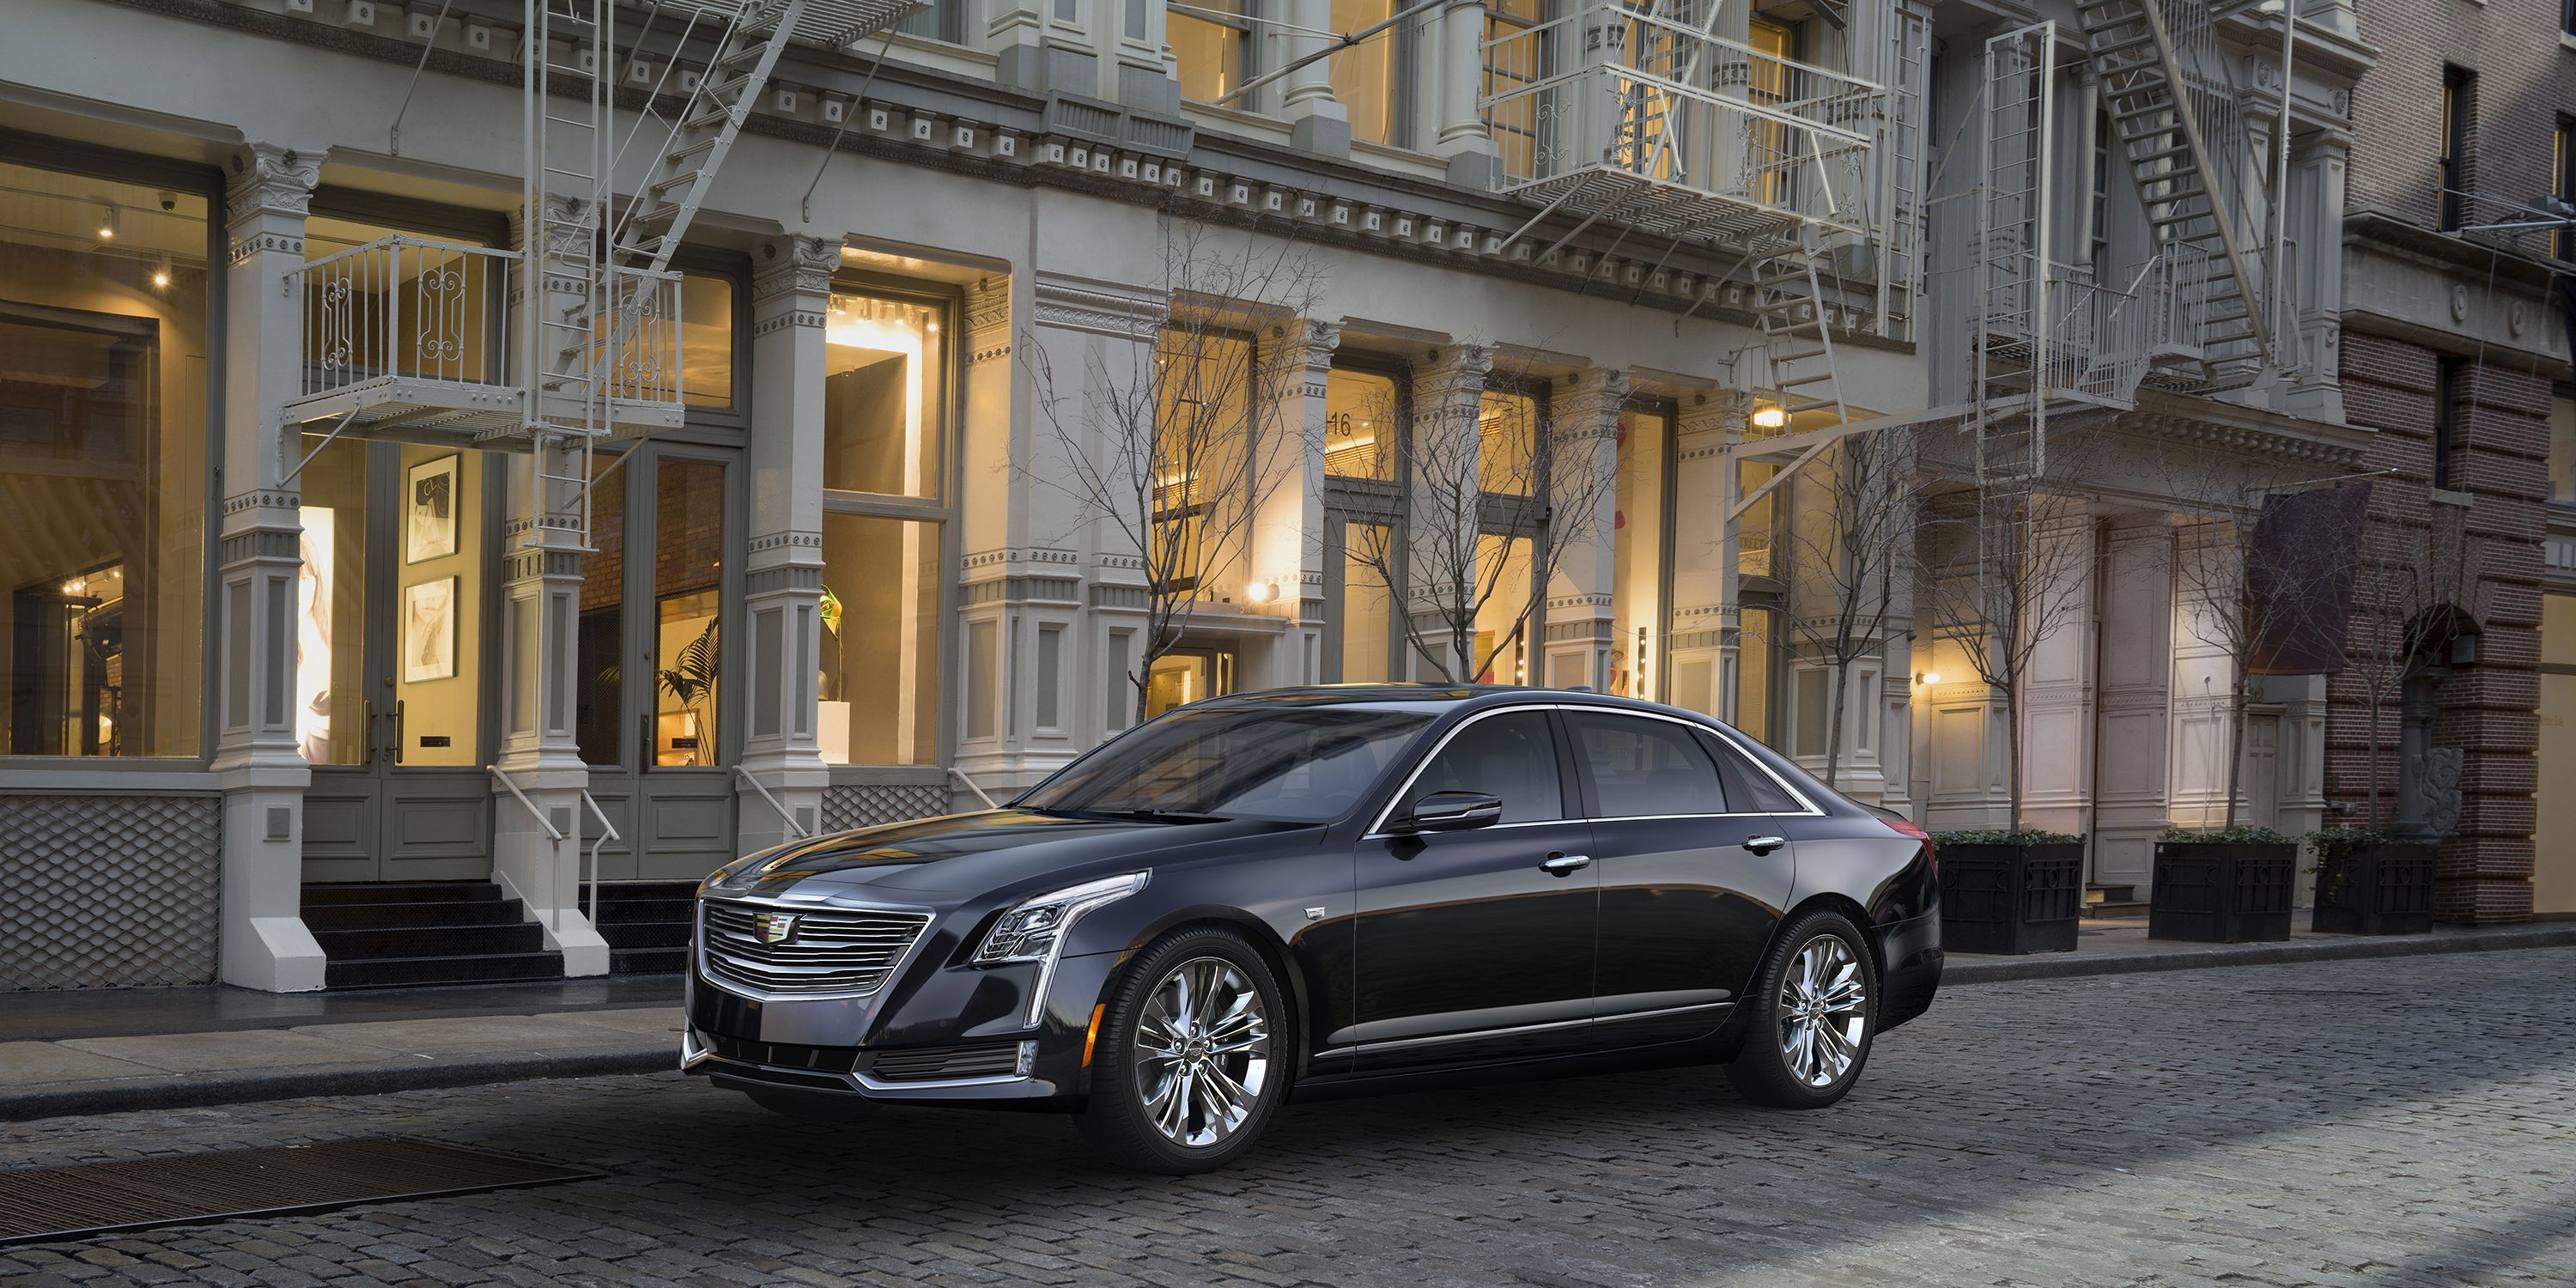 "<p>Cadillac's new flagship sedan, the CT6, is nearly<a href=""http://www.caranddriver.com/cadillac/ct6""> as large as a BMW 7-Series</a> and has a 2.0-liter turbocharged four-cylinder as an option. It makes about 265-hp. </p>"